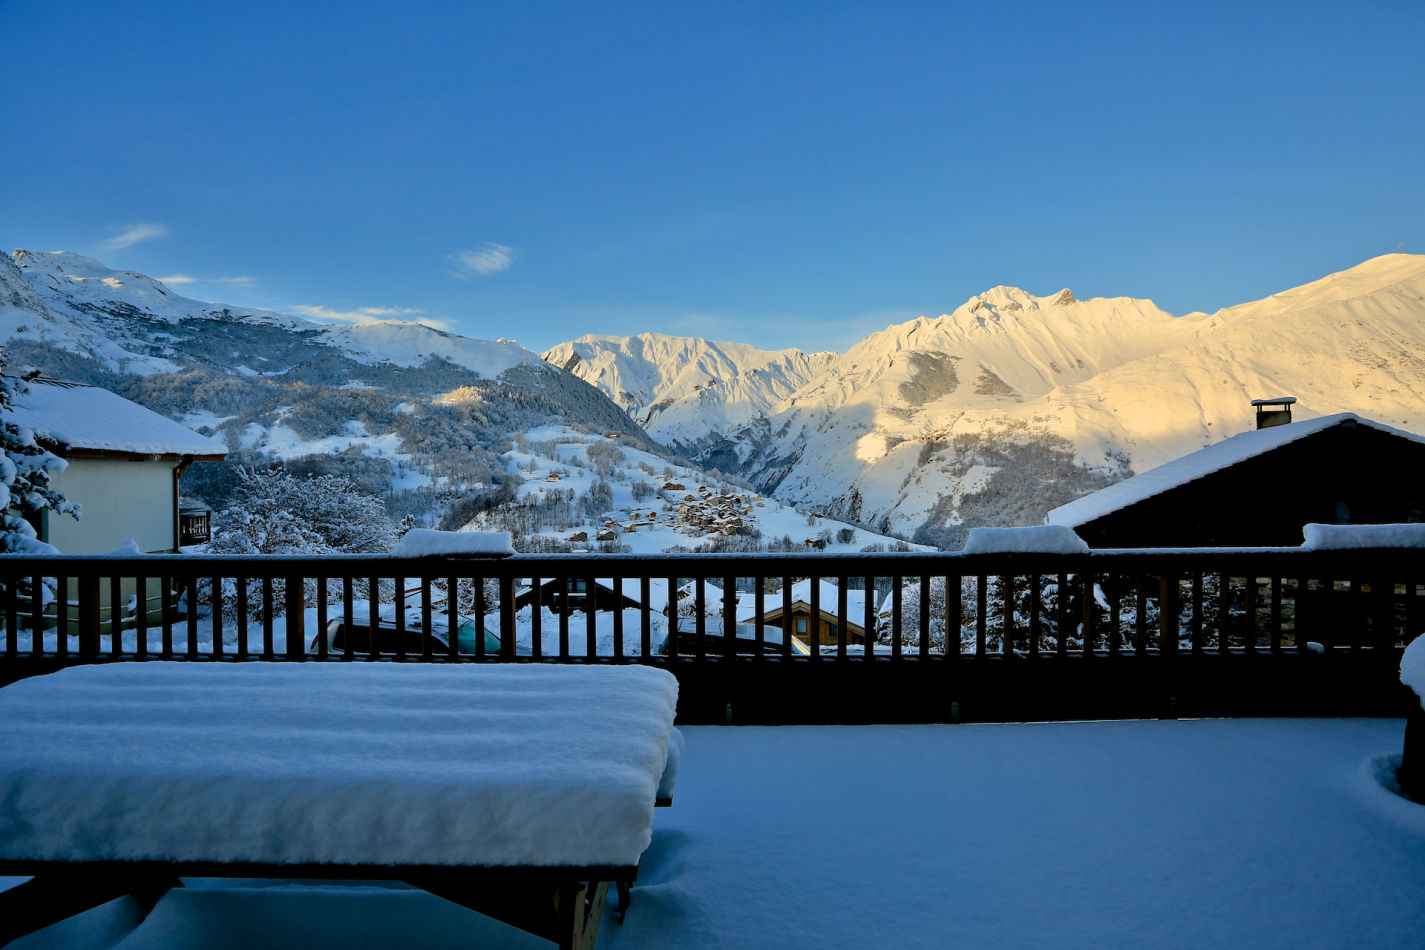 exterior-view-2-sunrise-at-chalet-cateline